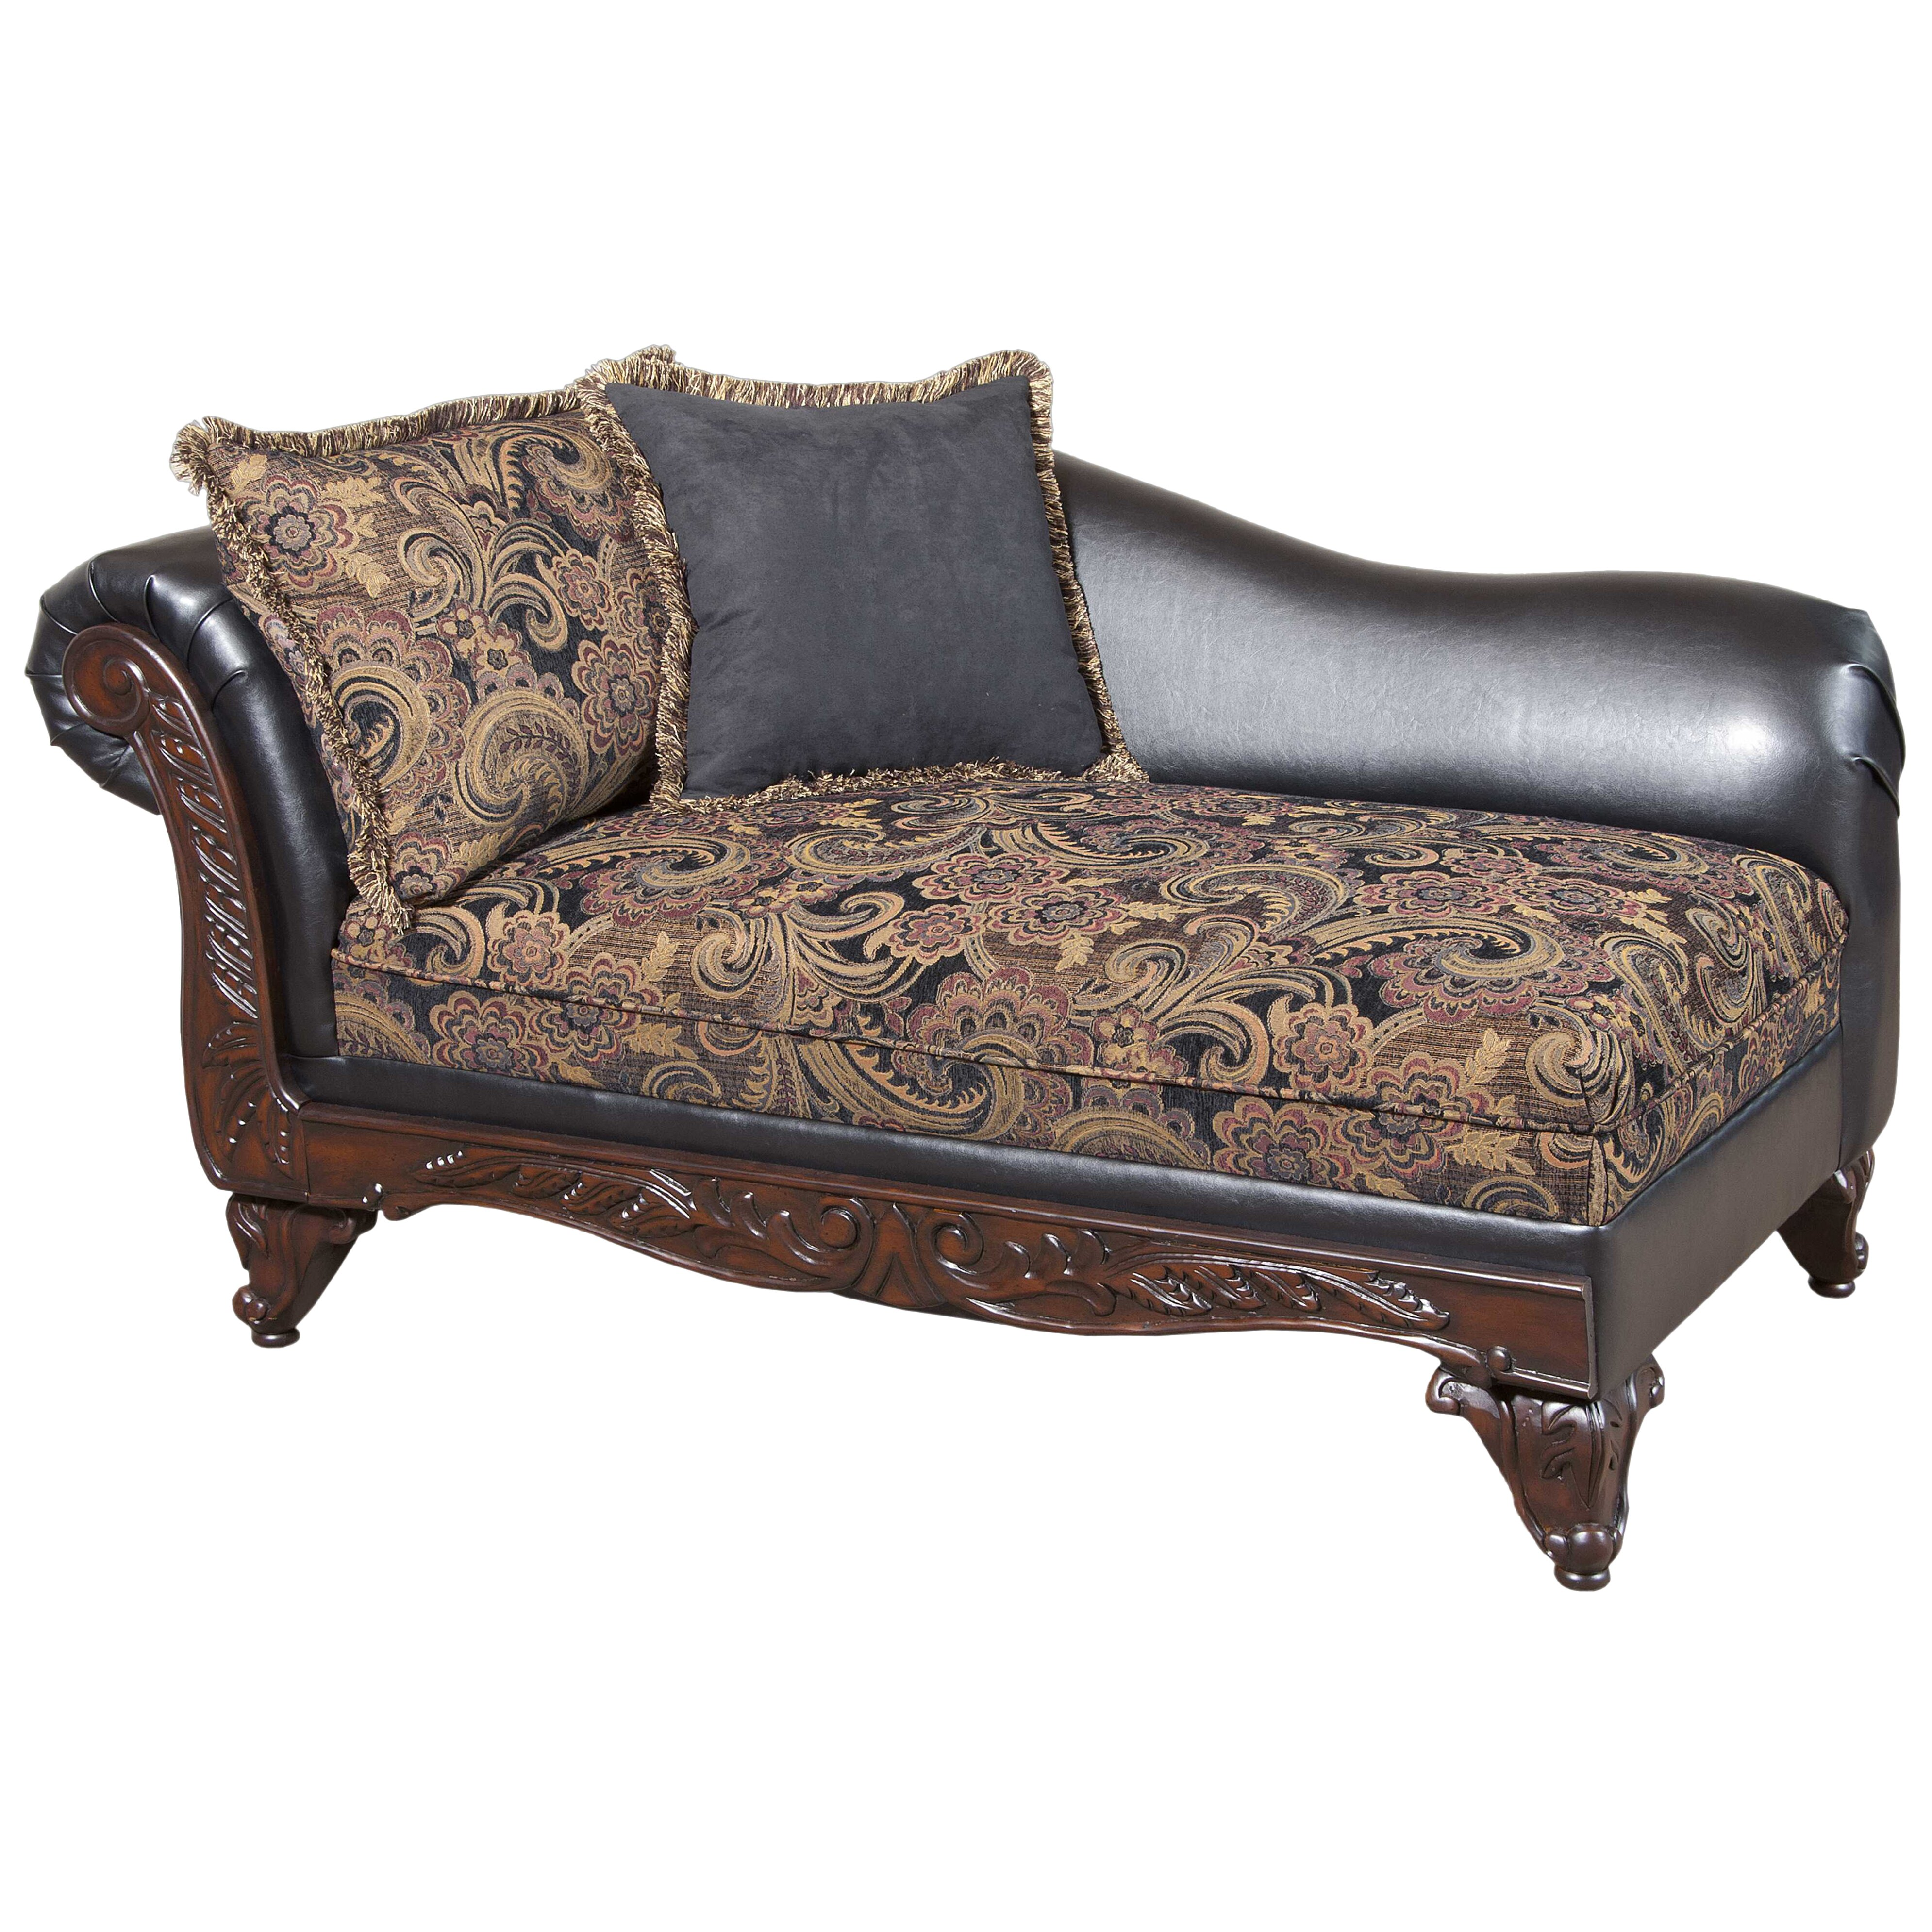 Serta Upholstery Floral Chaise Lounge & Reviews